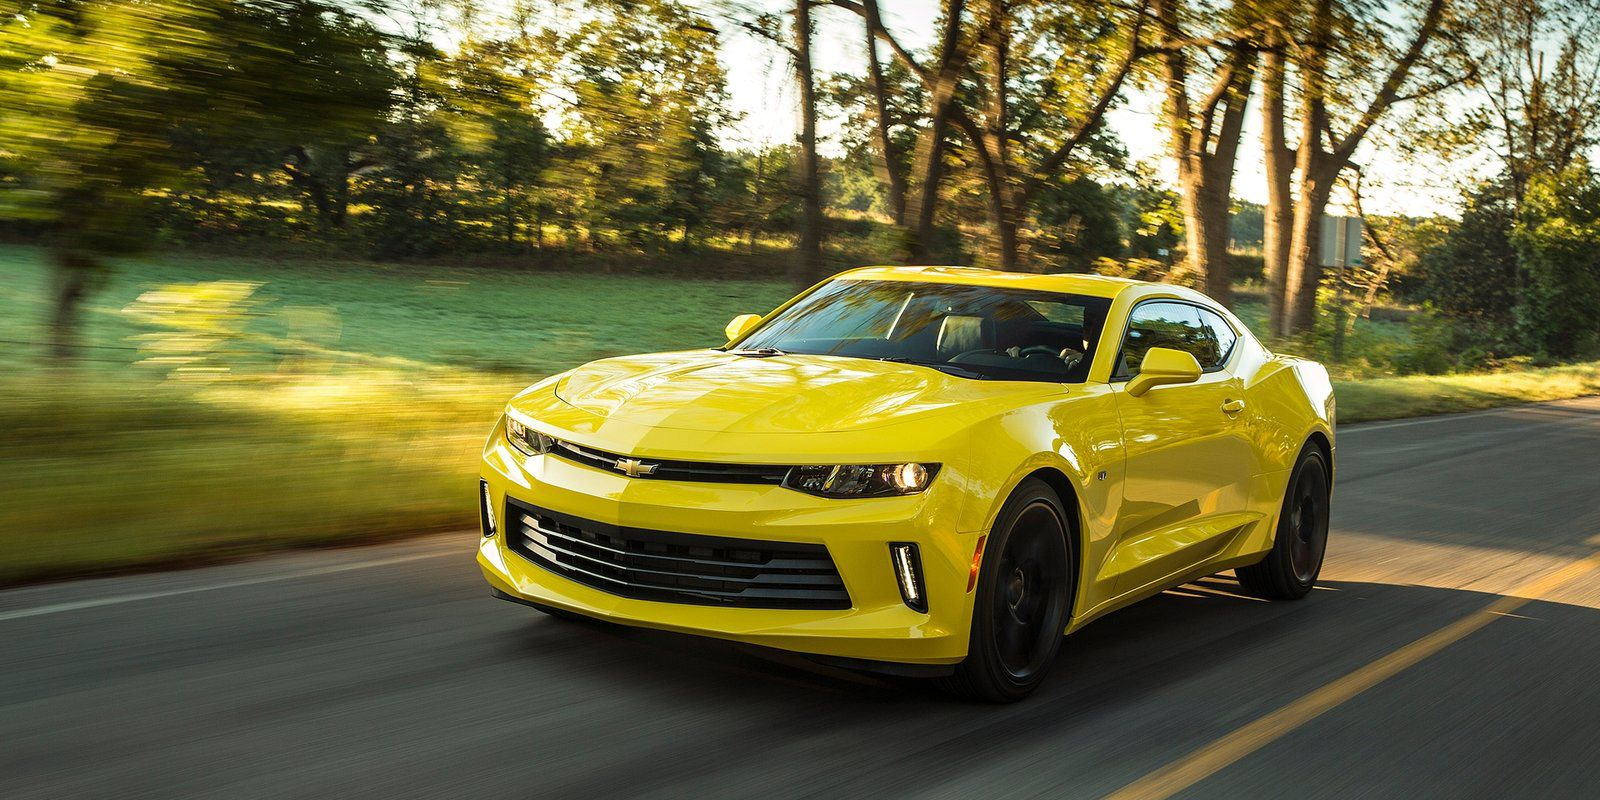 """<p>The new <a href=""""http://www.roadandtrack.com/new-cars/first-drives/a27066/2016-chevrolet-camaro-ss-first-drive/"""" target=""""_blank"""">Camaro SS is undeniably awesome</a>, and if you get the automatic, that big V8 will do 28 mpg on the highway. Drivers looking for more fuel-efficient fun can eke out an extra three miles per gallon if they opt for the base engine, a 2.0-liter turbocharged four-cylinder. It makes 275 horsepower and 295 lb.-ft. of torque, good for 0-60 in 5.4 seconds, but it's also rated at 31 mpg highway.</p>"""